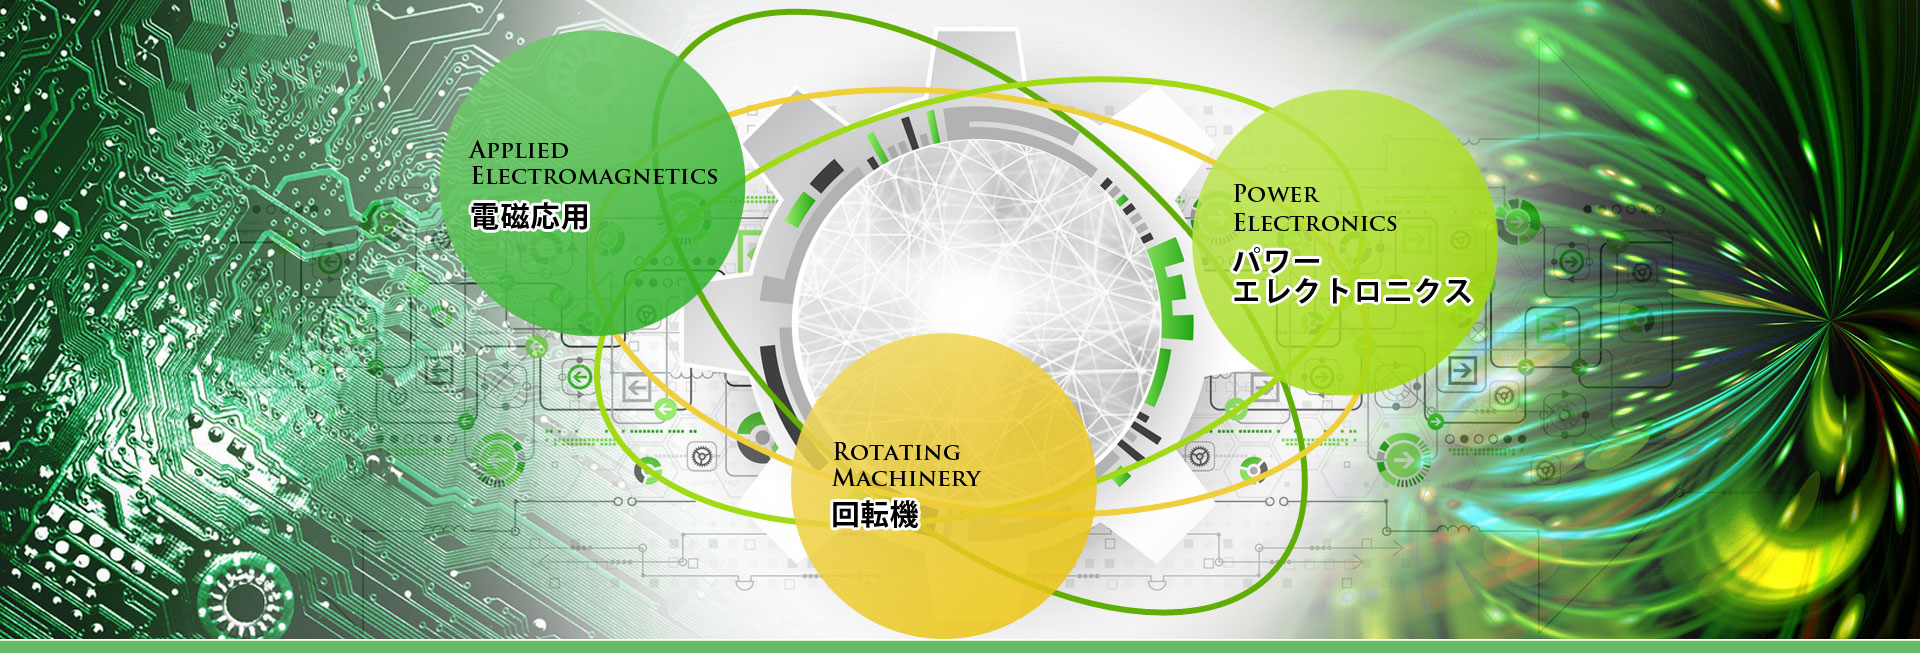 電磁応用 Applied Electromagnetics パワーエレクトロニクス Power Electronics 回転機 Rotating Machinery